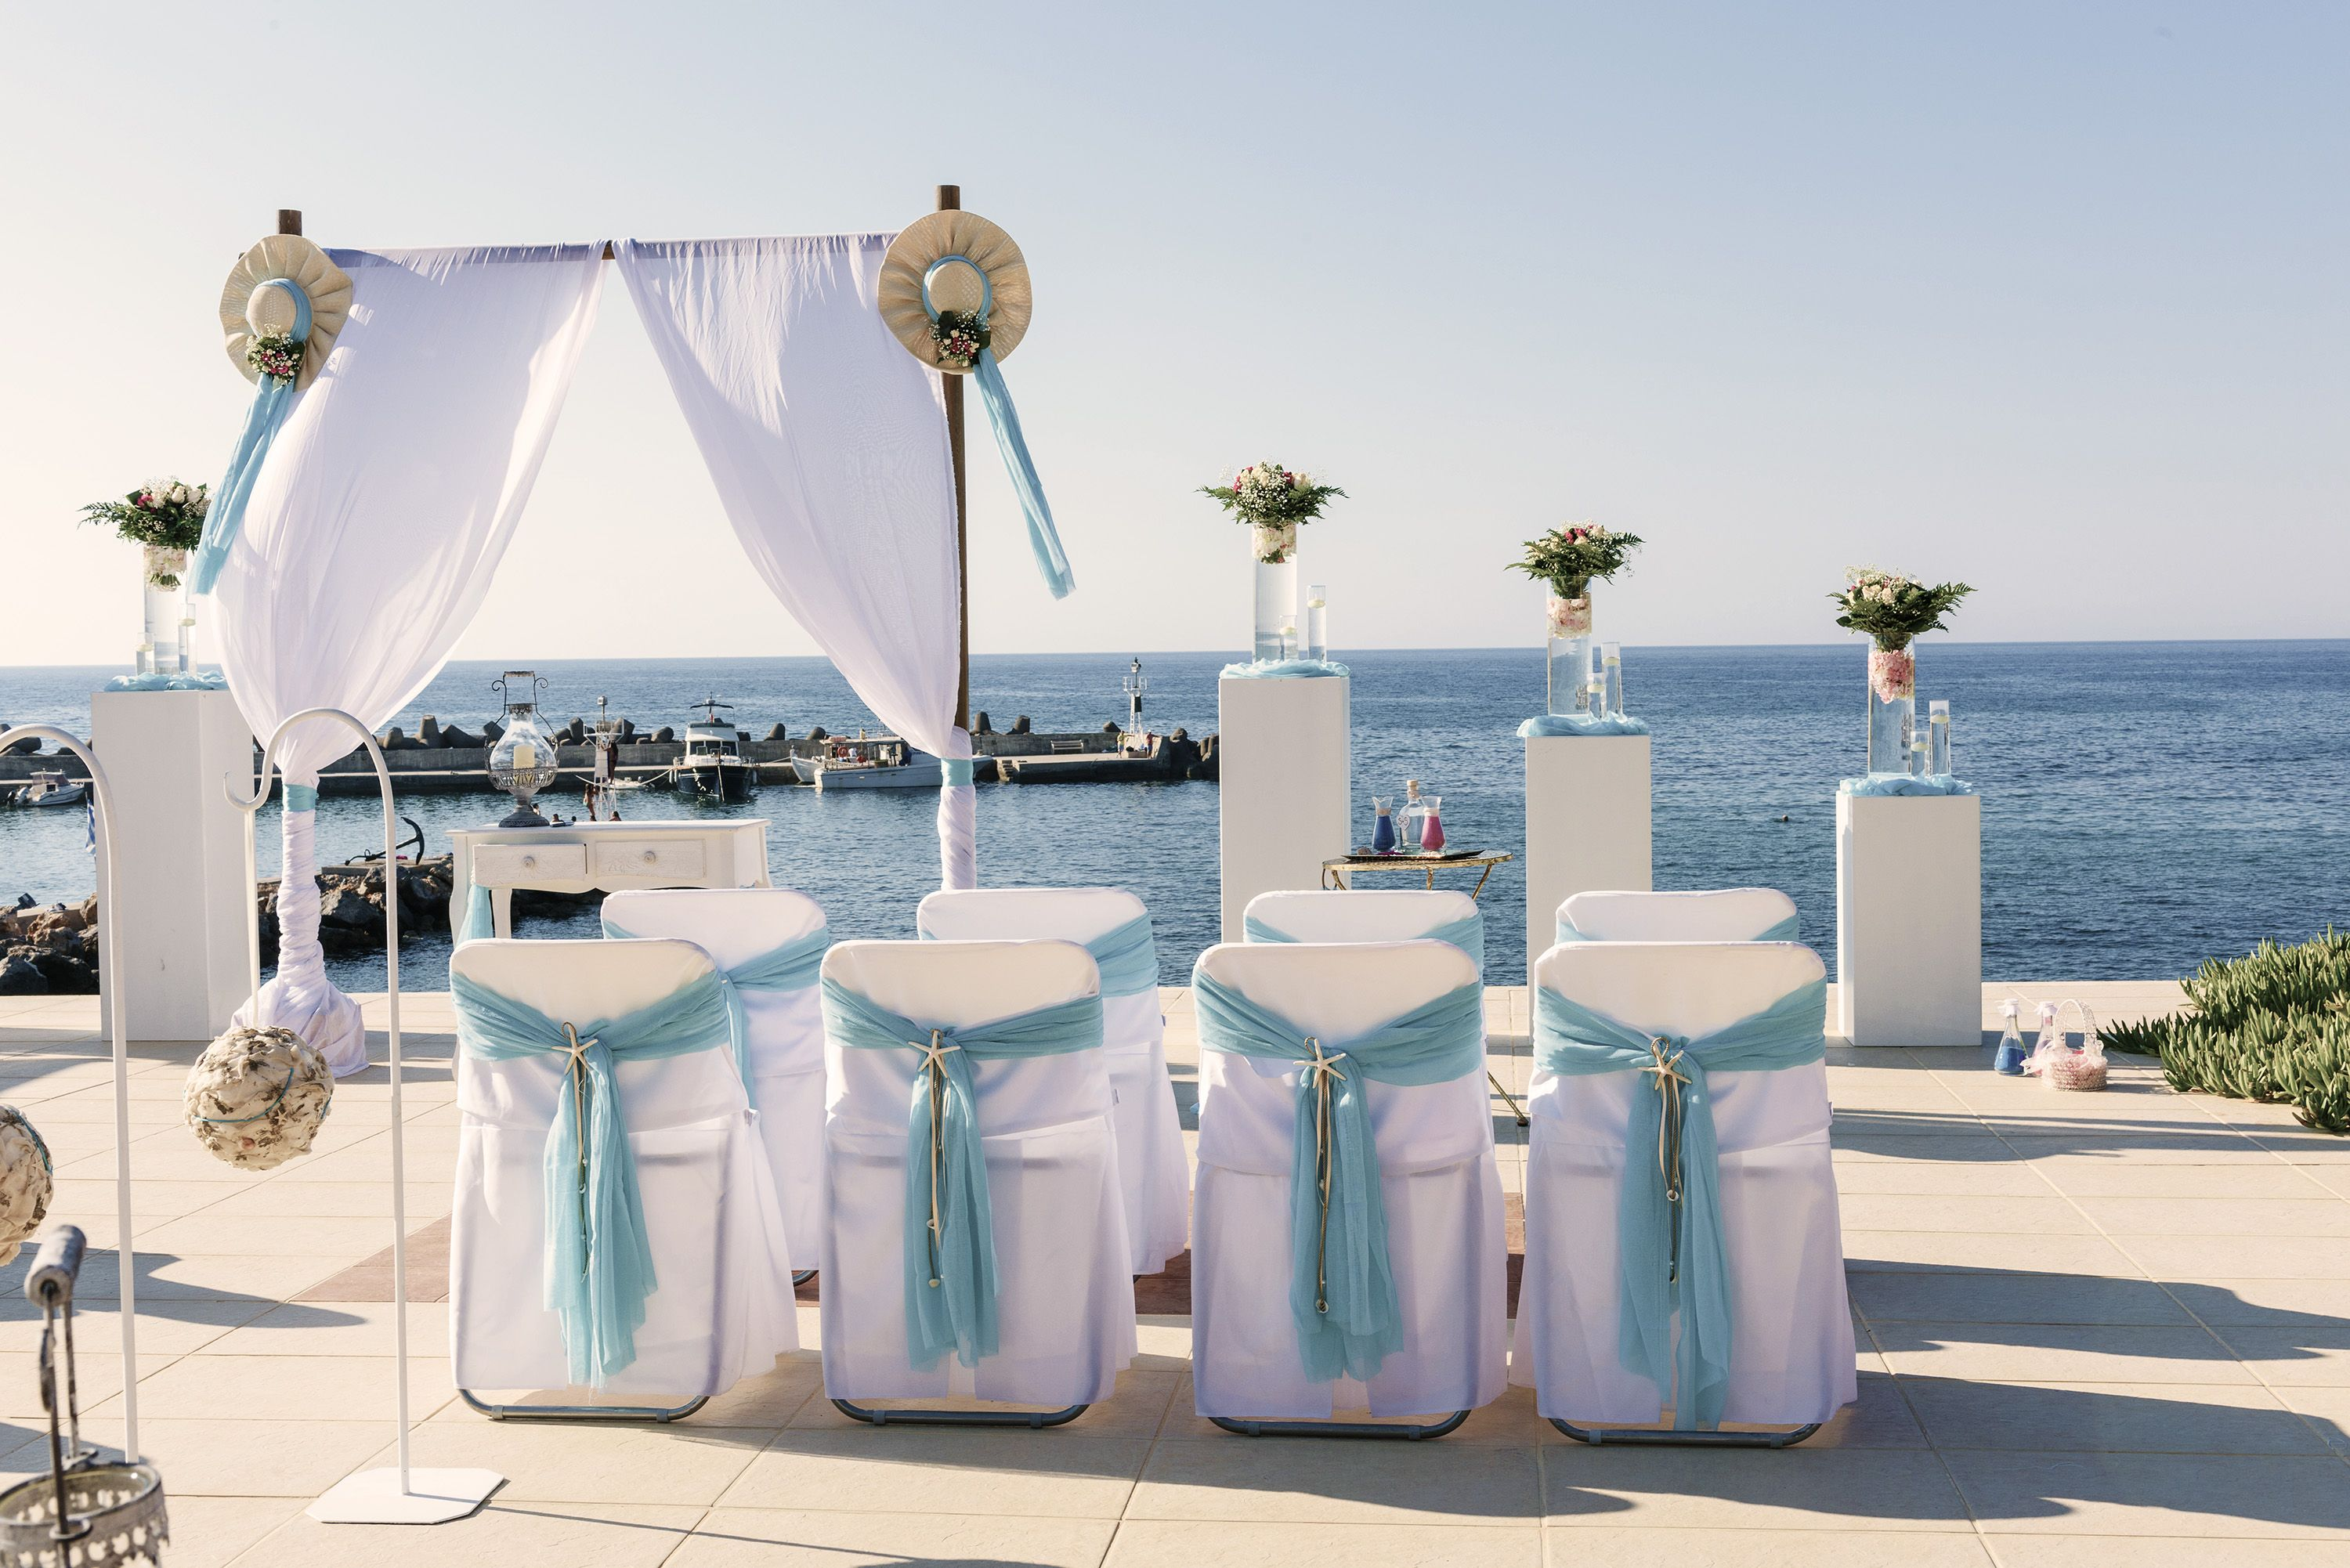 Dorable Starfish For Wedding Decorations Pictures - Wedding Idea ...